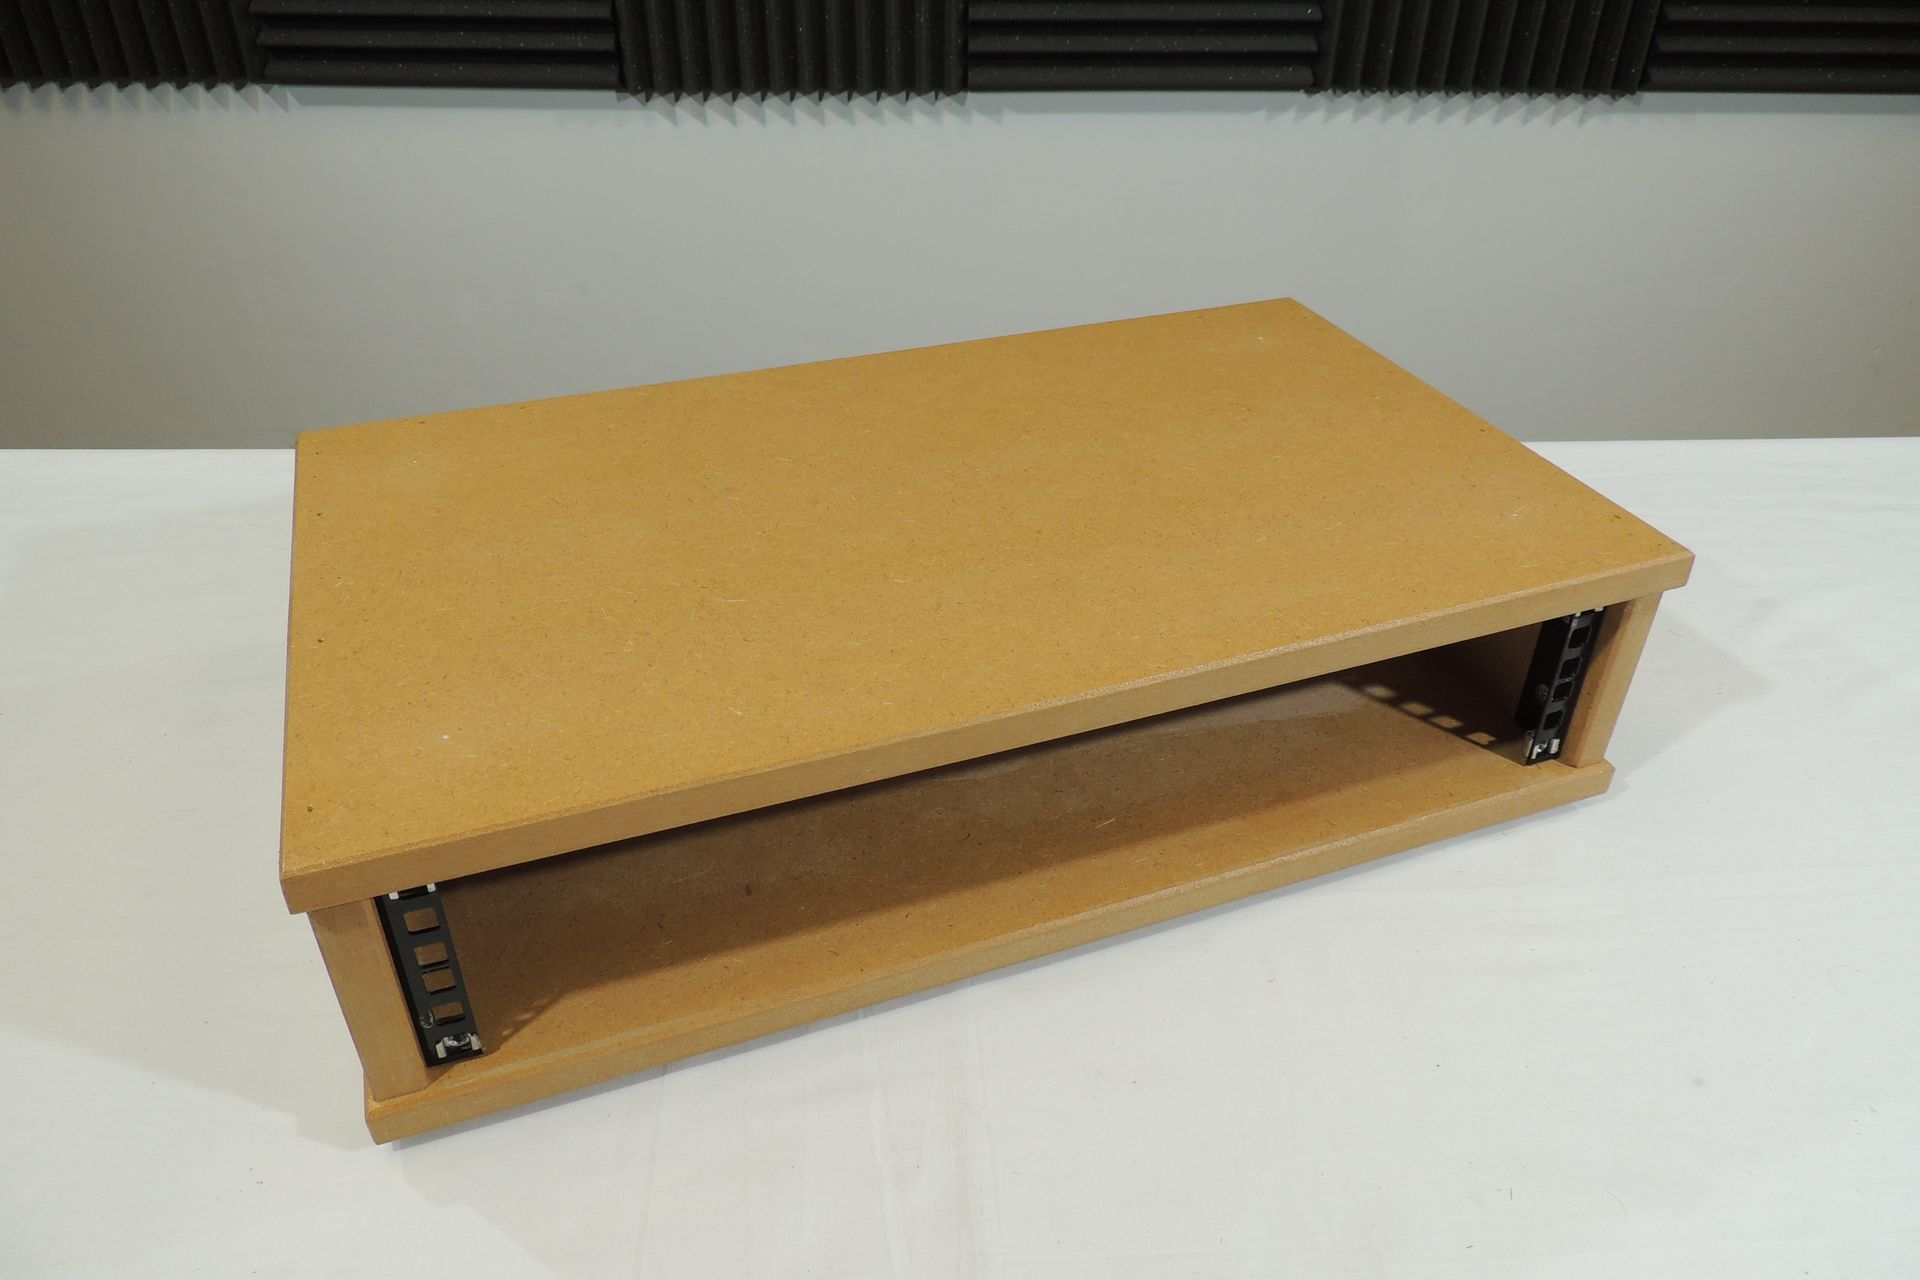 MDF 2U 300mm DESKTOP RACK CASE